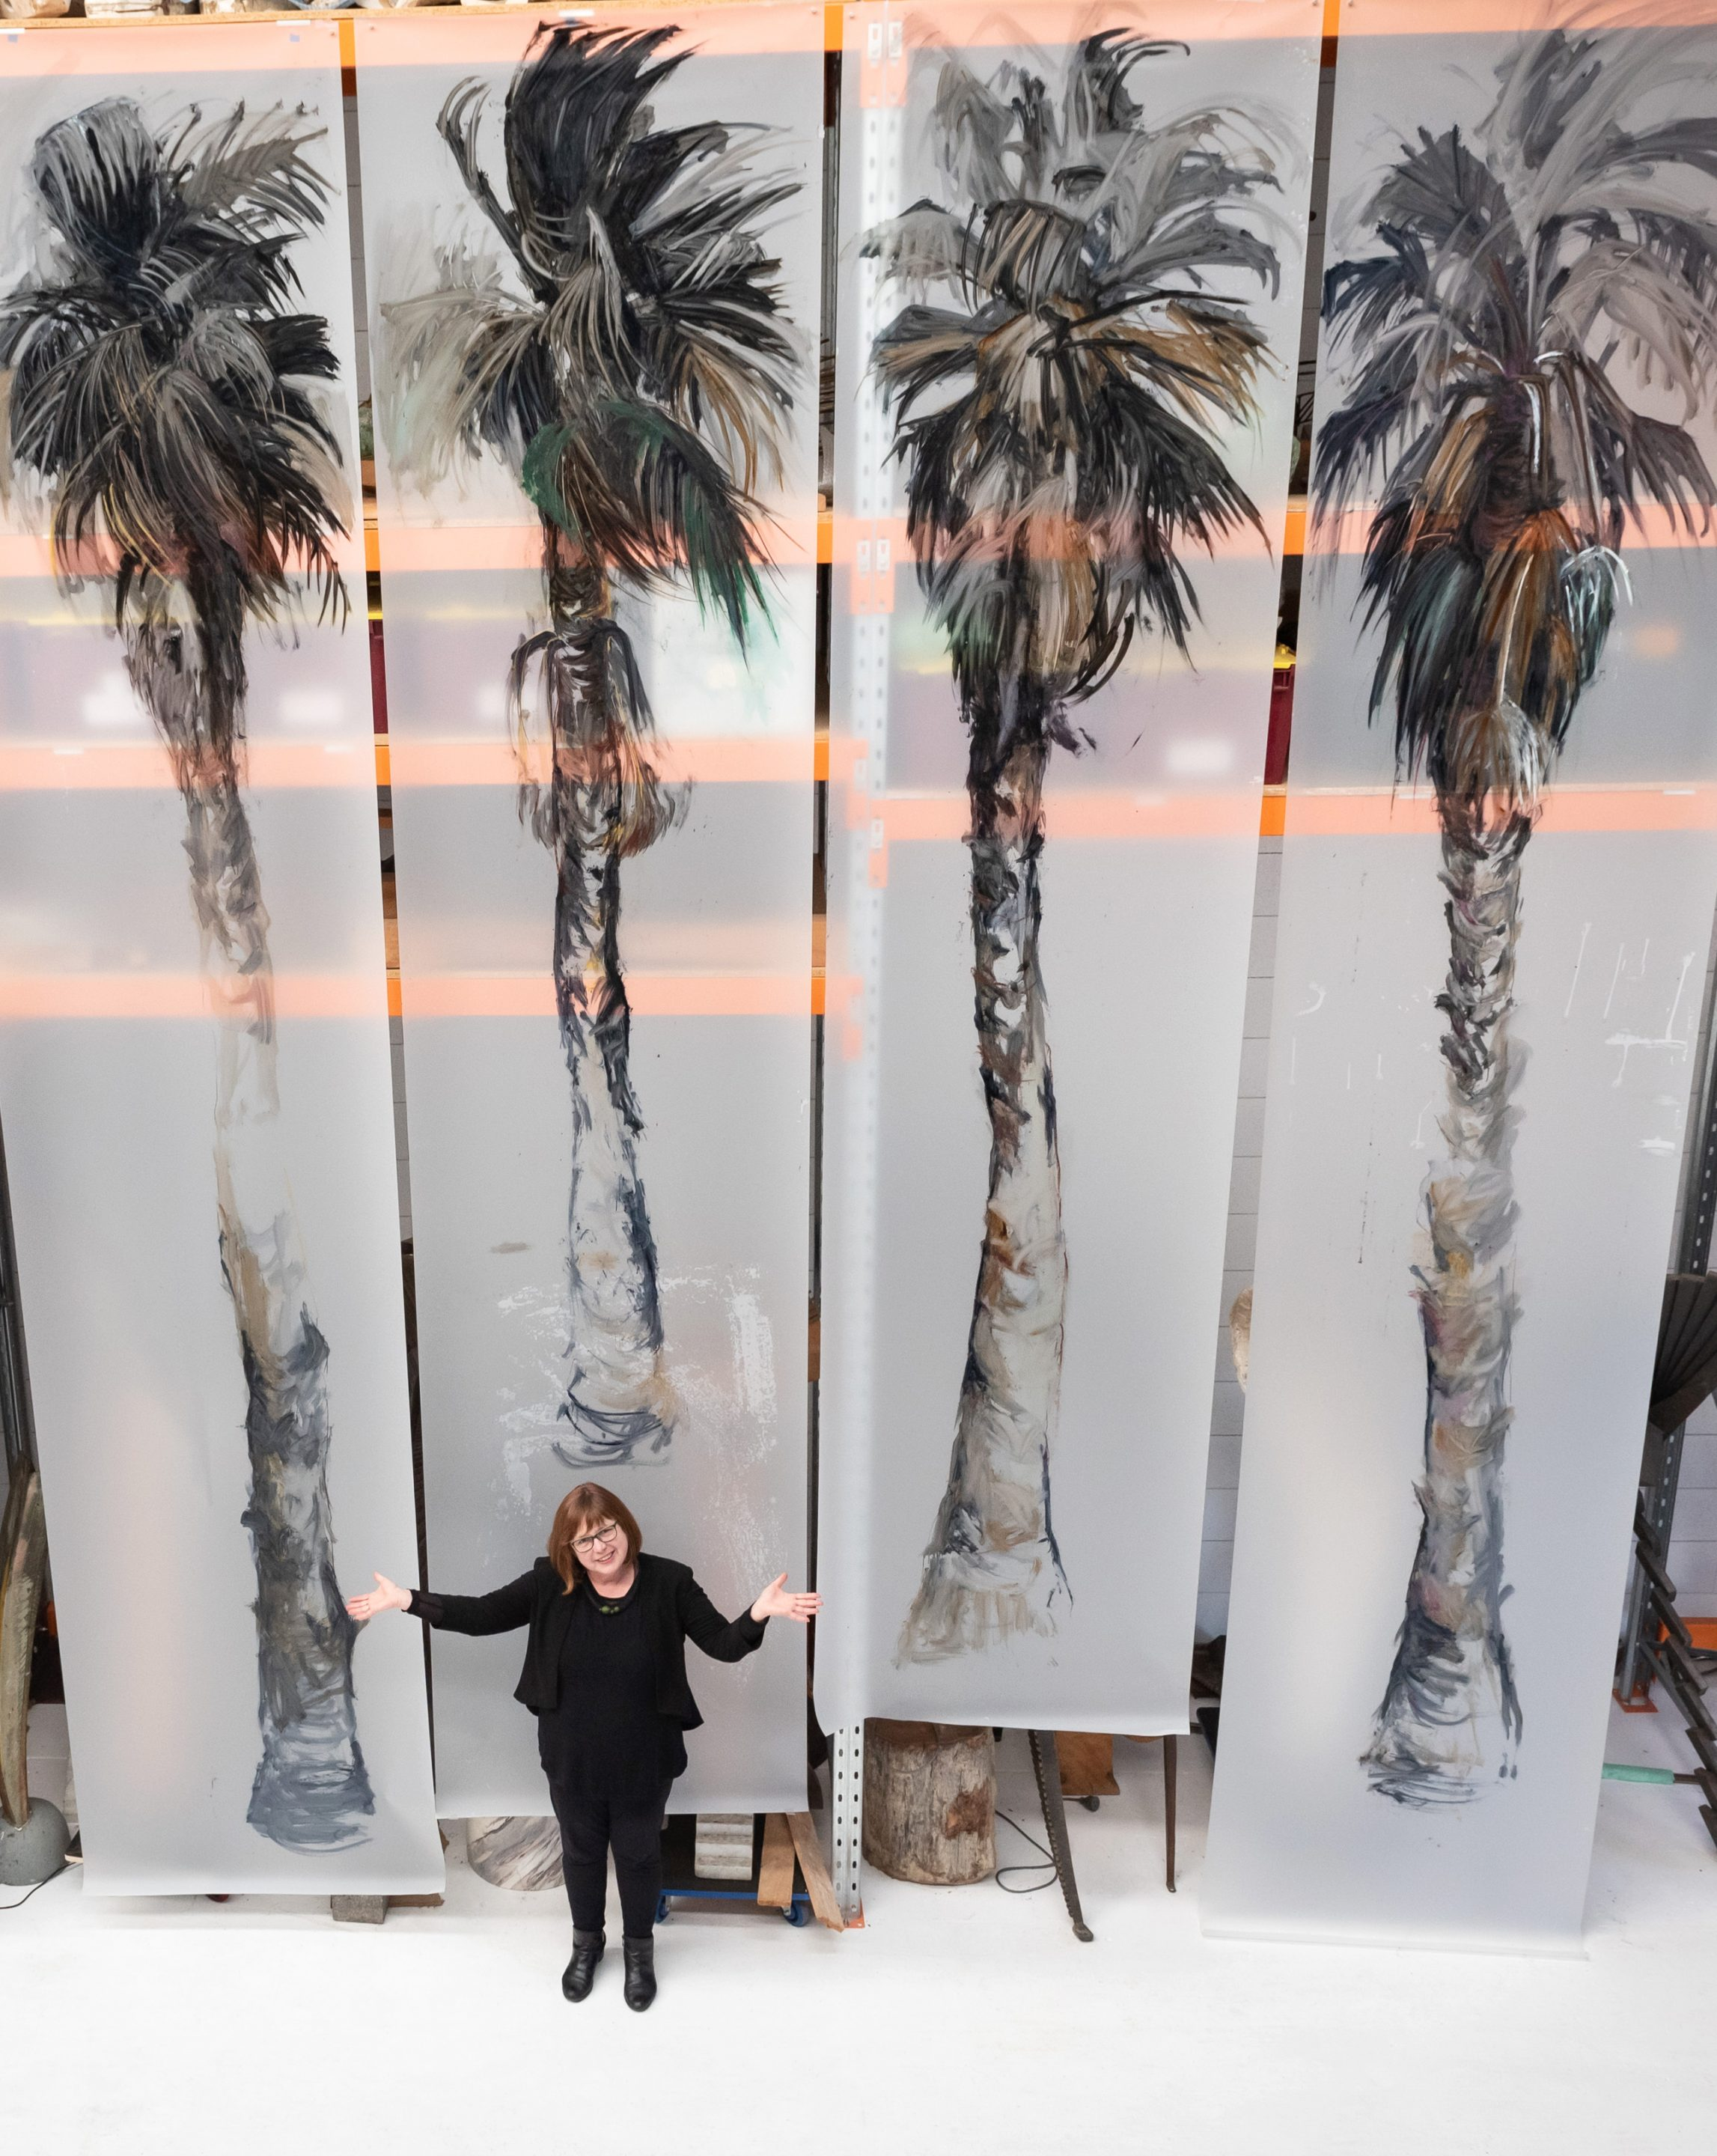 Anne Bennett with Palm Trees